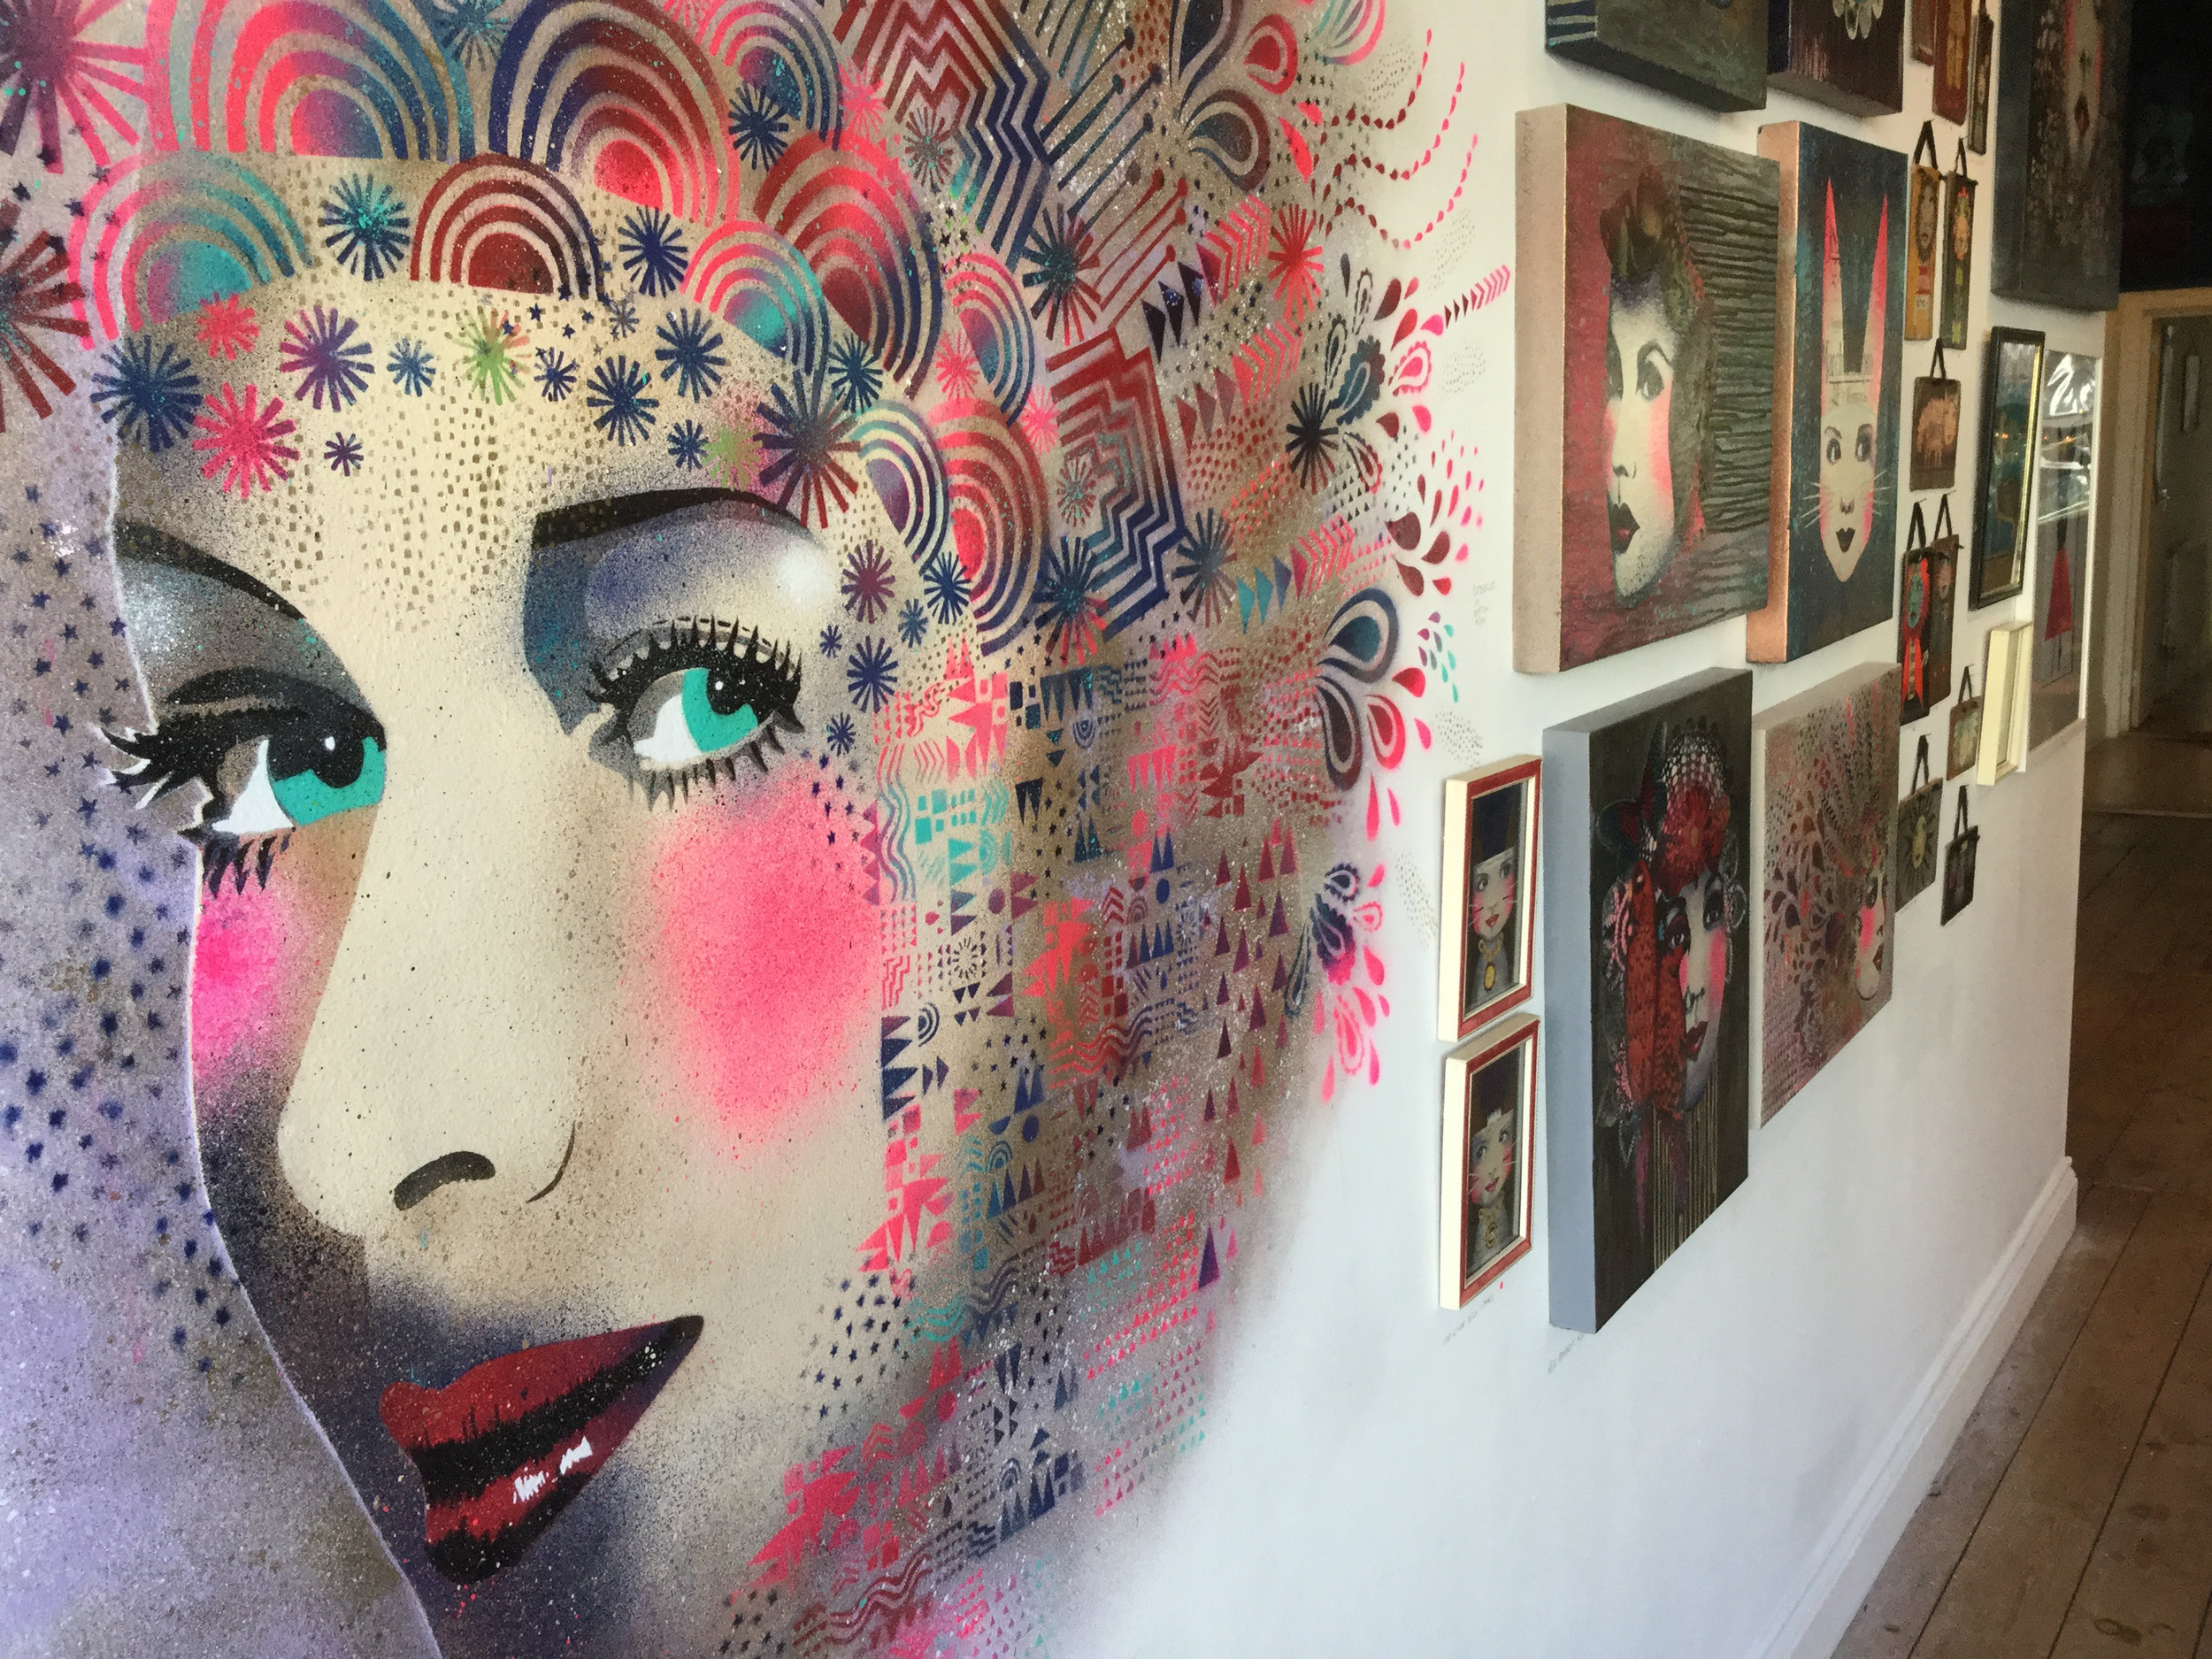 'In your Face' Solo Exhibition - Various works as part of solo show.Photo credit: Street Art Atlas